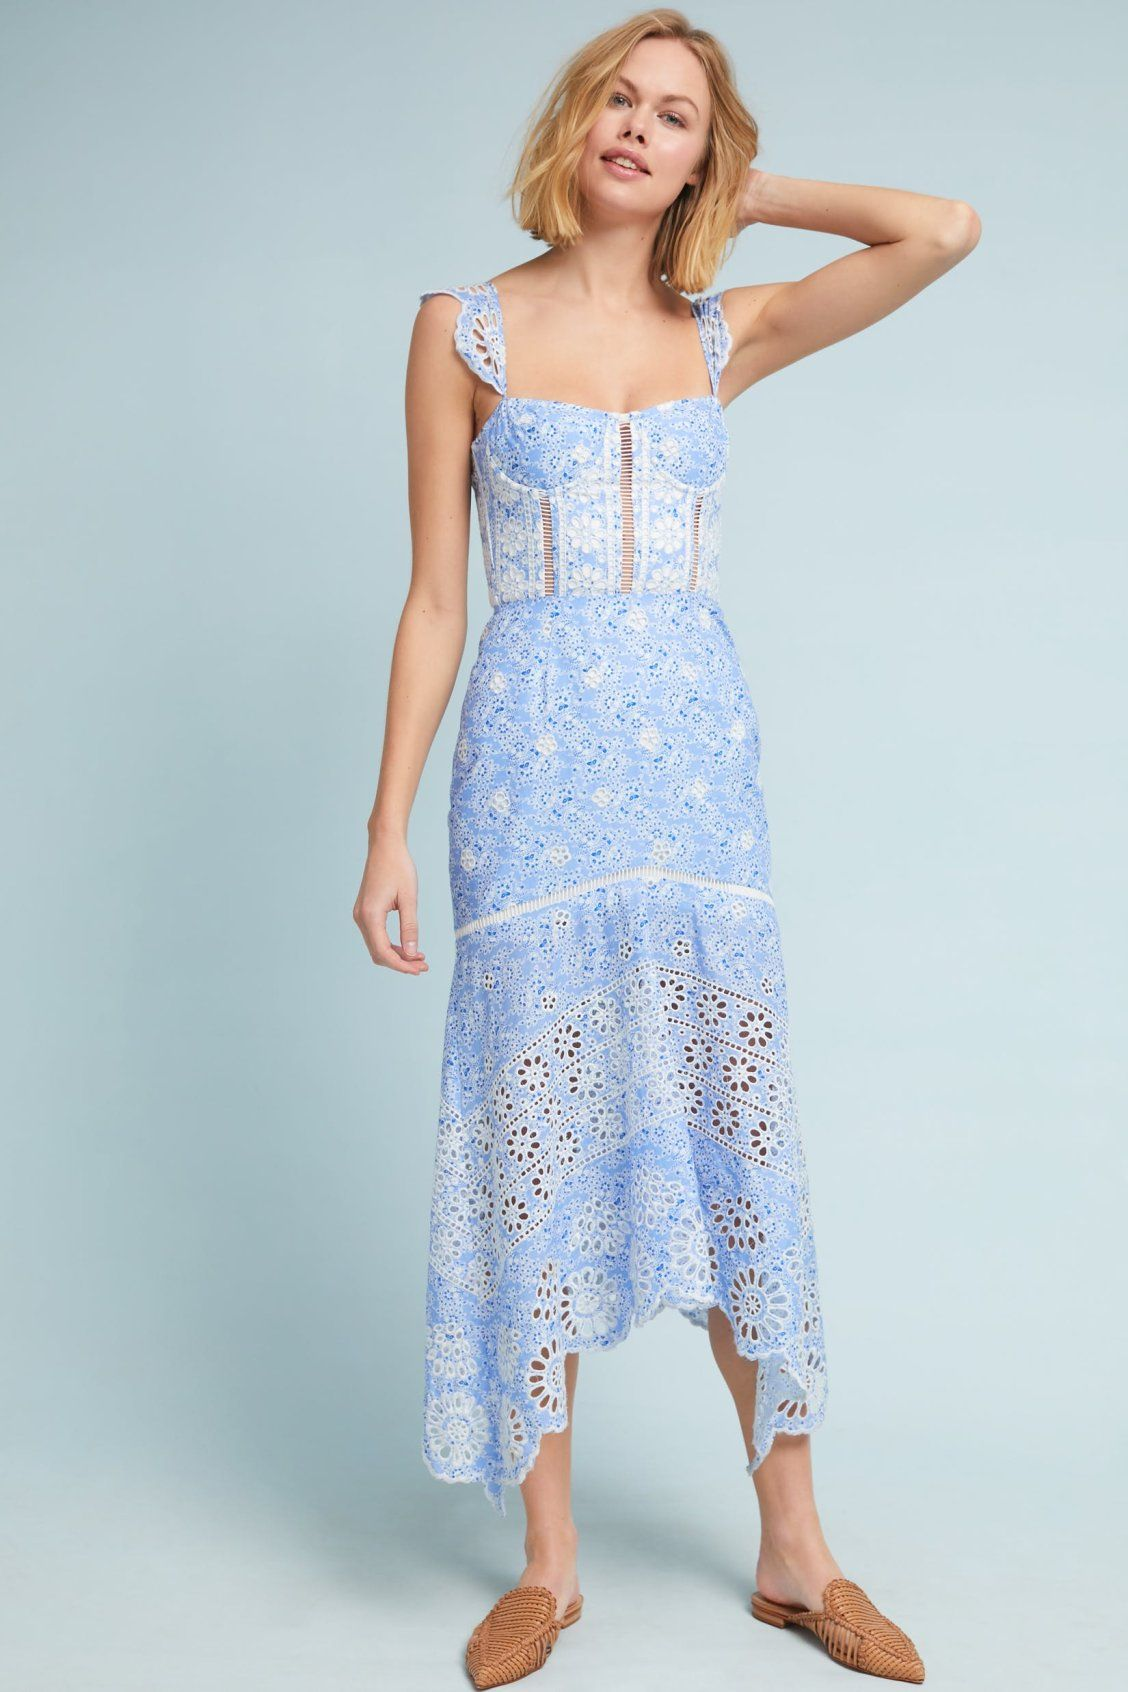 Excellent Dress For Wedding Guest Spring Images - Wedding Ideas ...